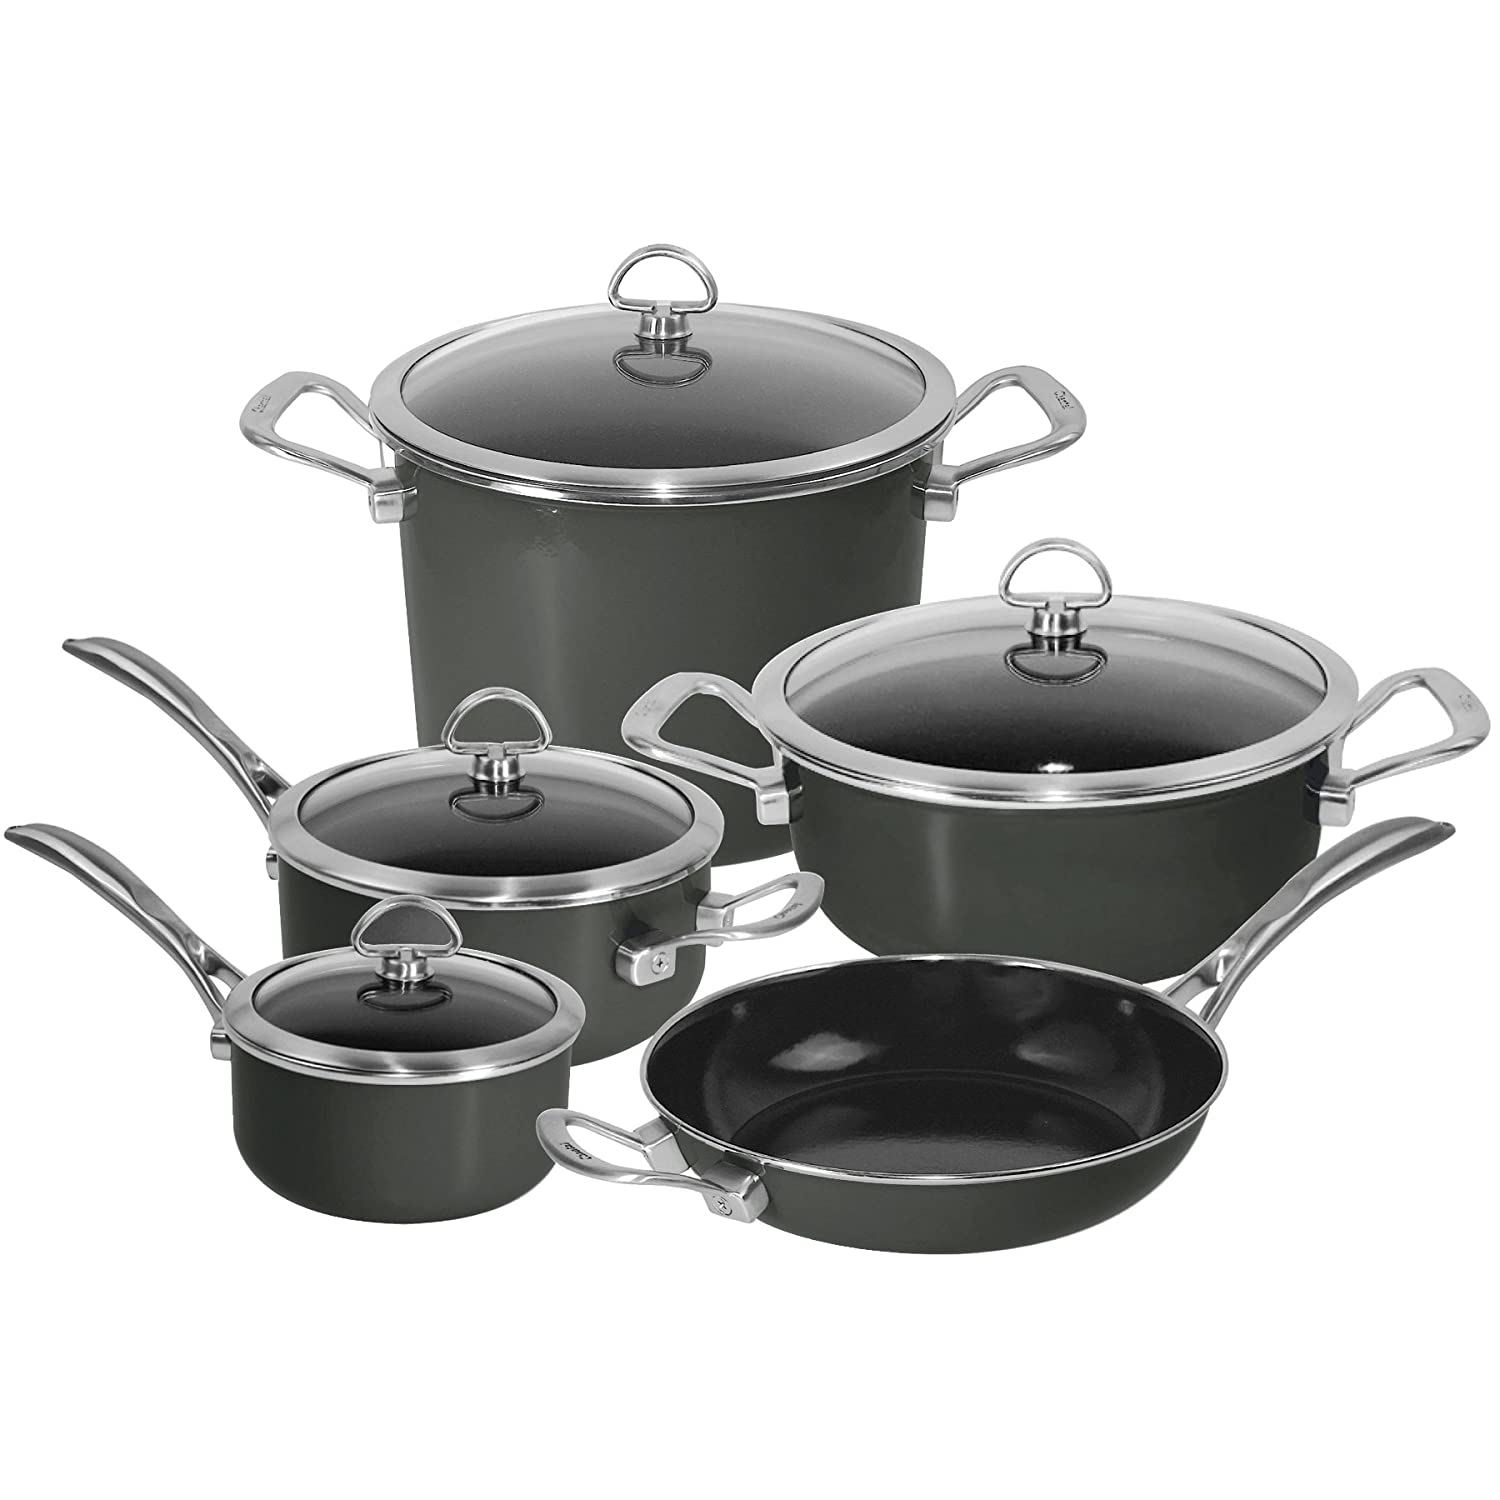 Amazon.com: Chantal 9-Piece Copper Fusion Cookware Set-Chili Red ...